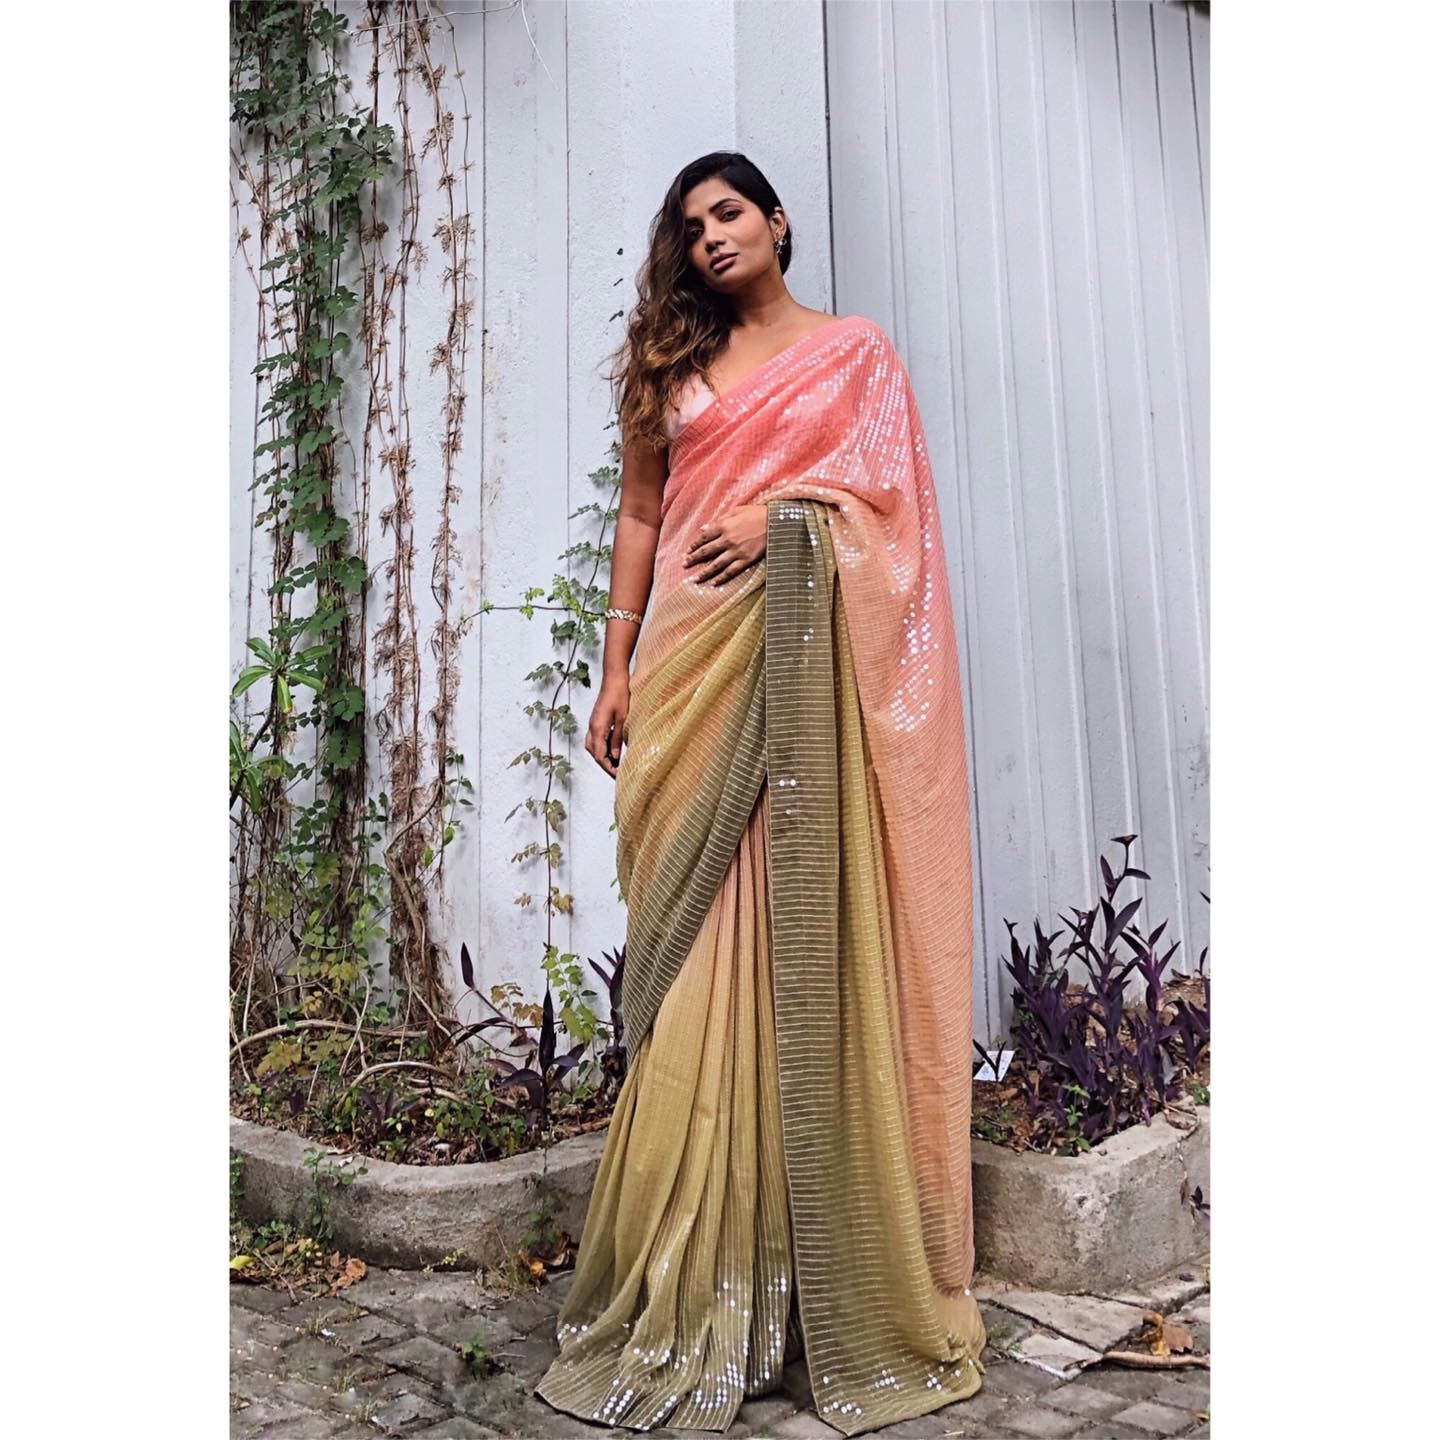 BLUSH PINK TO PASTEL GREEN OMBRE SEQUIN SARI! 2021-01-01